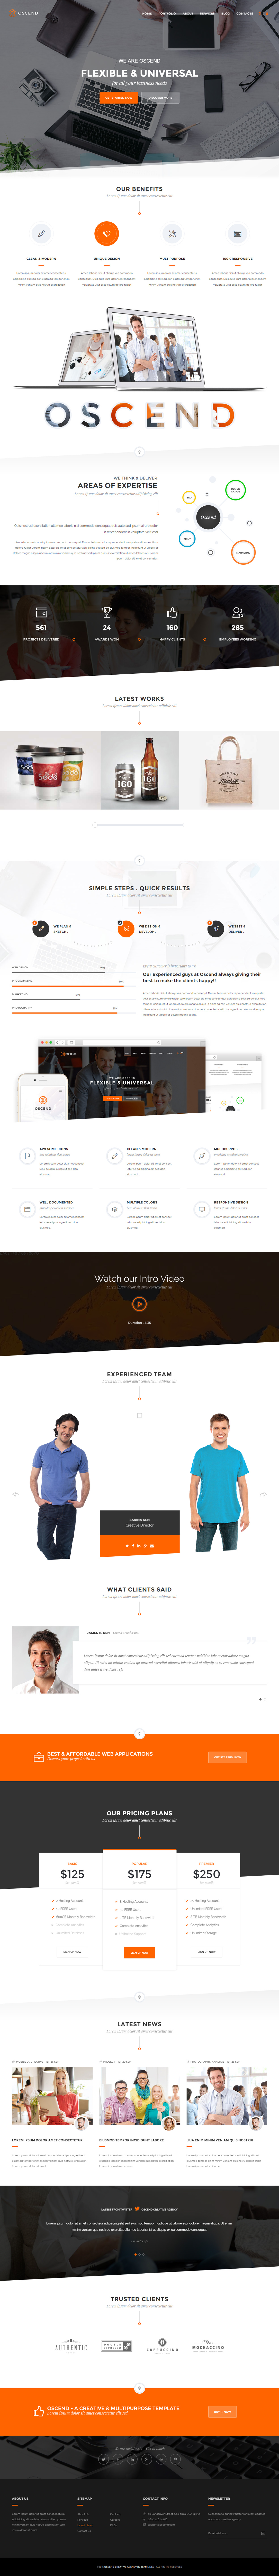 Cute 1 Page Resumes Examples Small 1.5 Inch Hexagon Template Clean 1099 Employee Contract Template 1099 Misc Template Youthful 1099 Pay Stub Template Pink1099 Template 30  Best Responsive Video Background HTML5 Template 2017